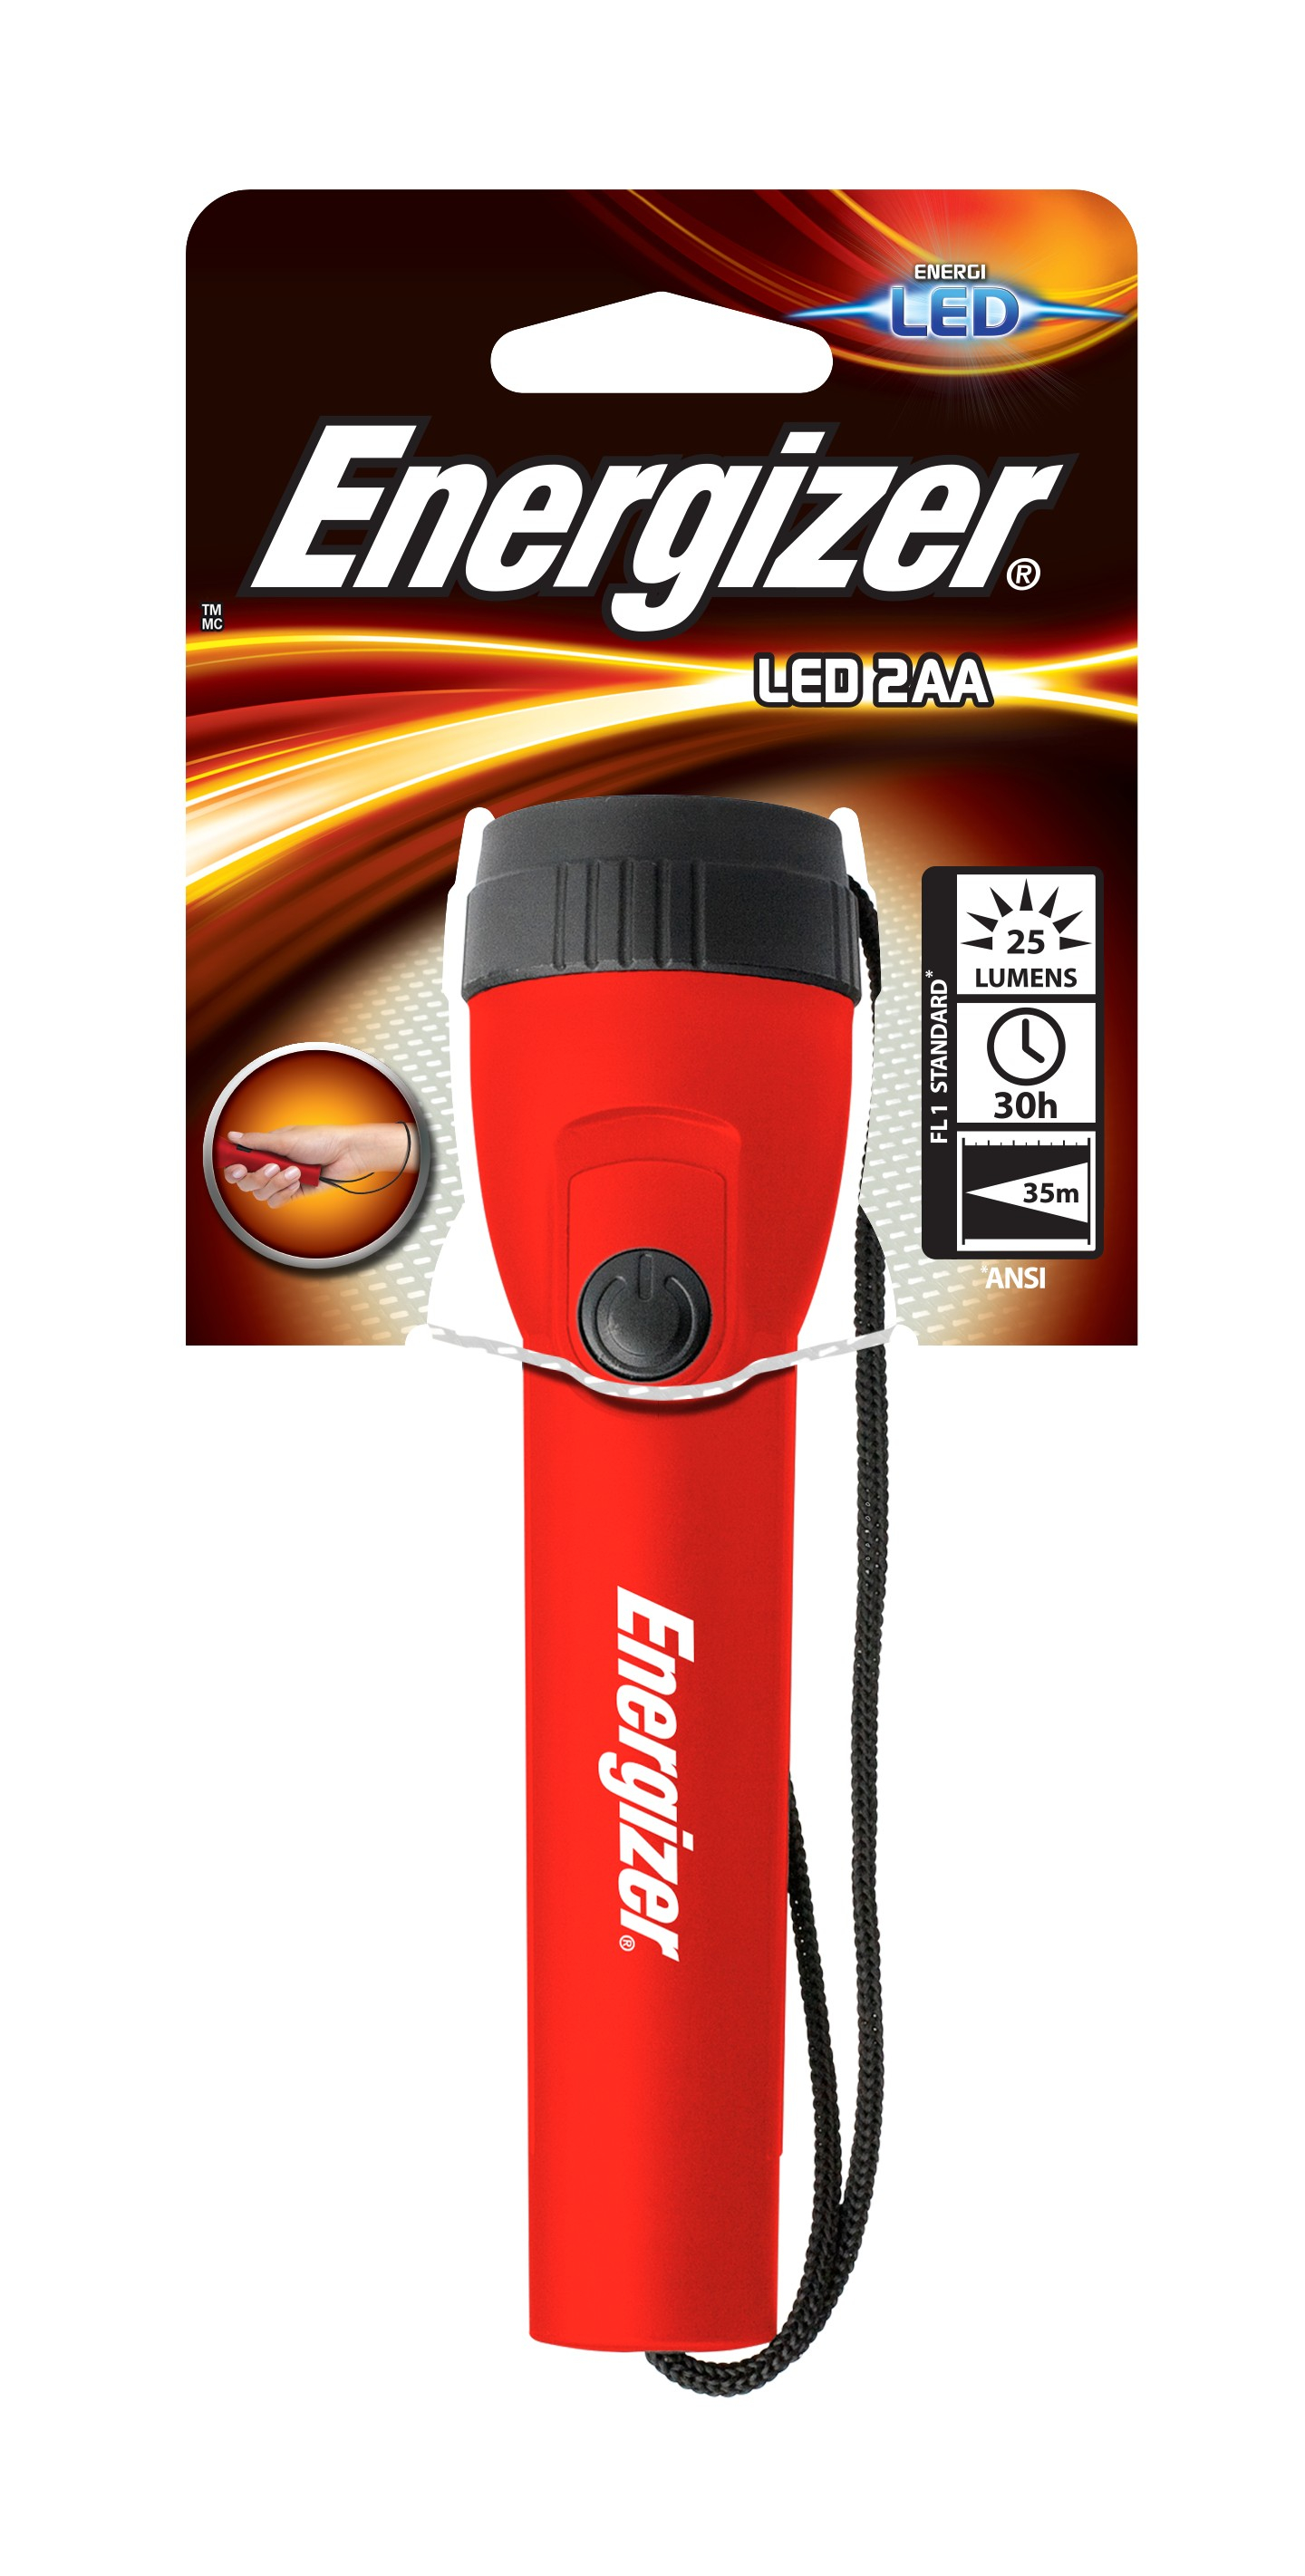 Energizer Light 2AA Torcia a mano Rosso LED